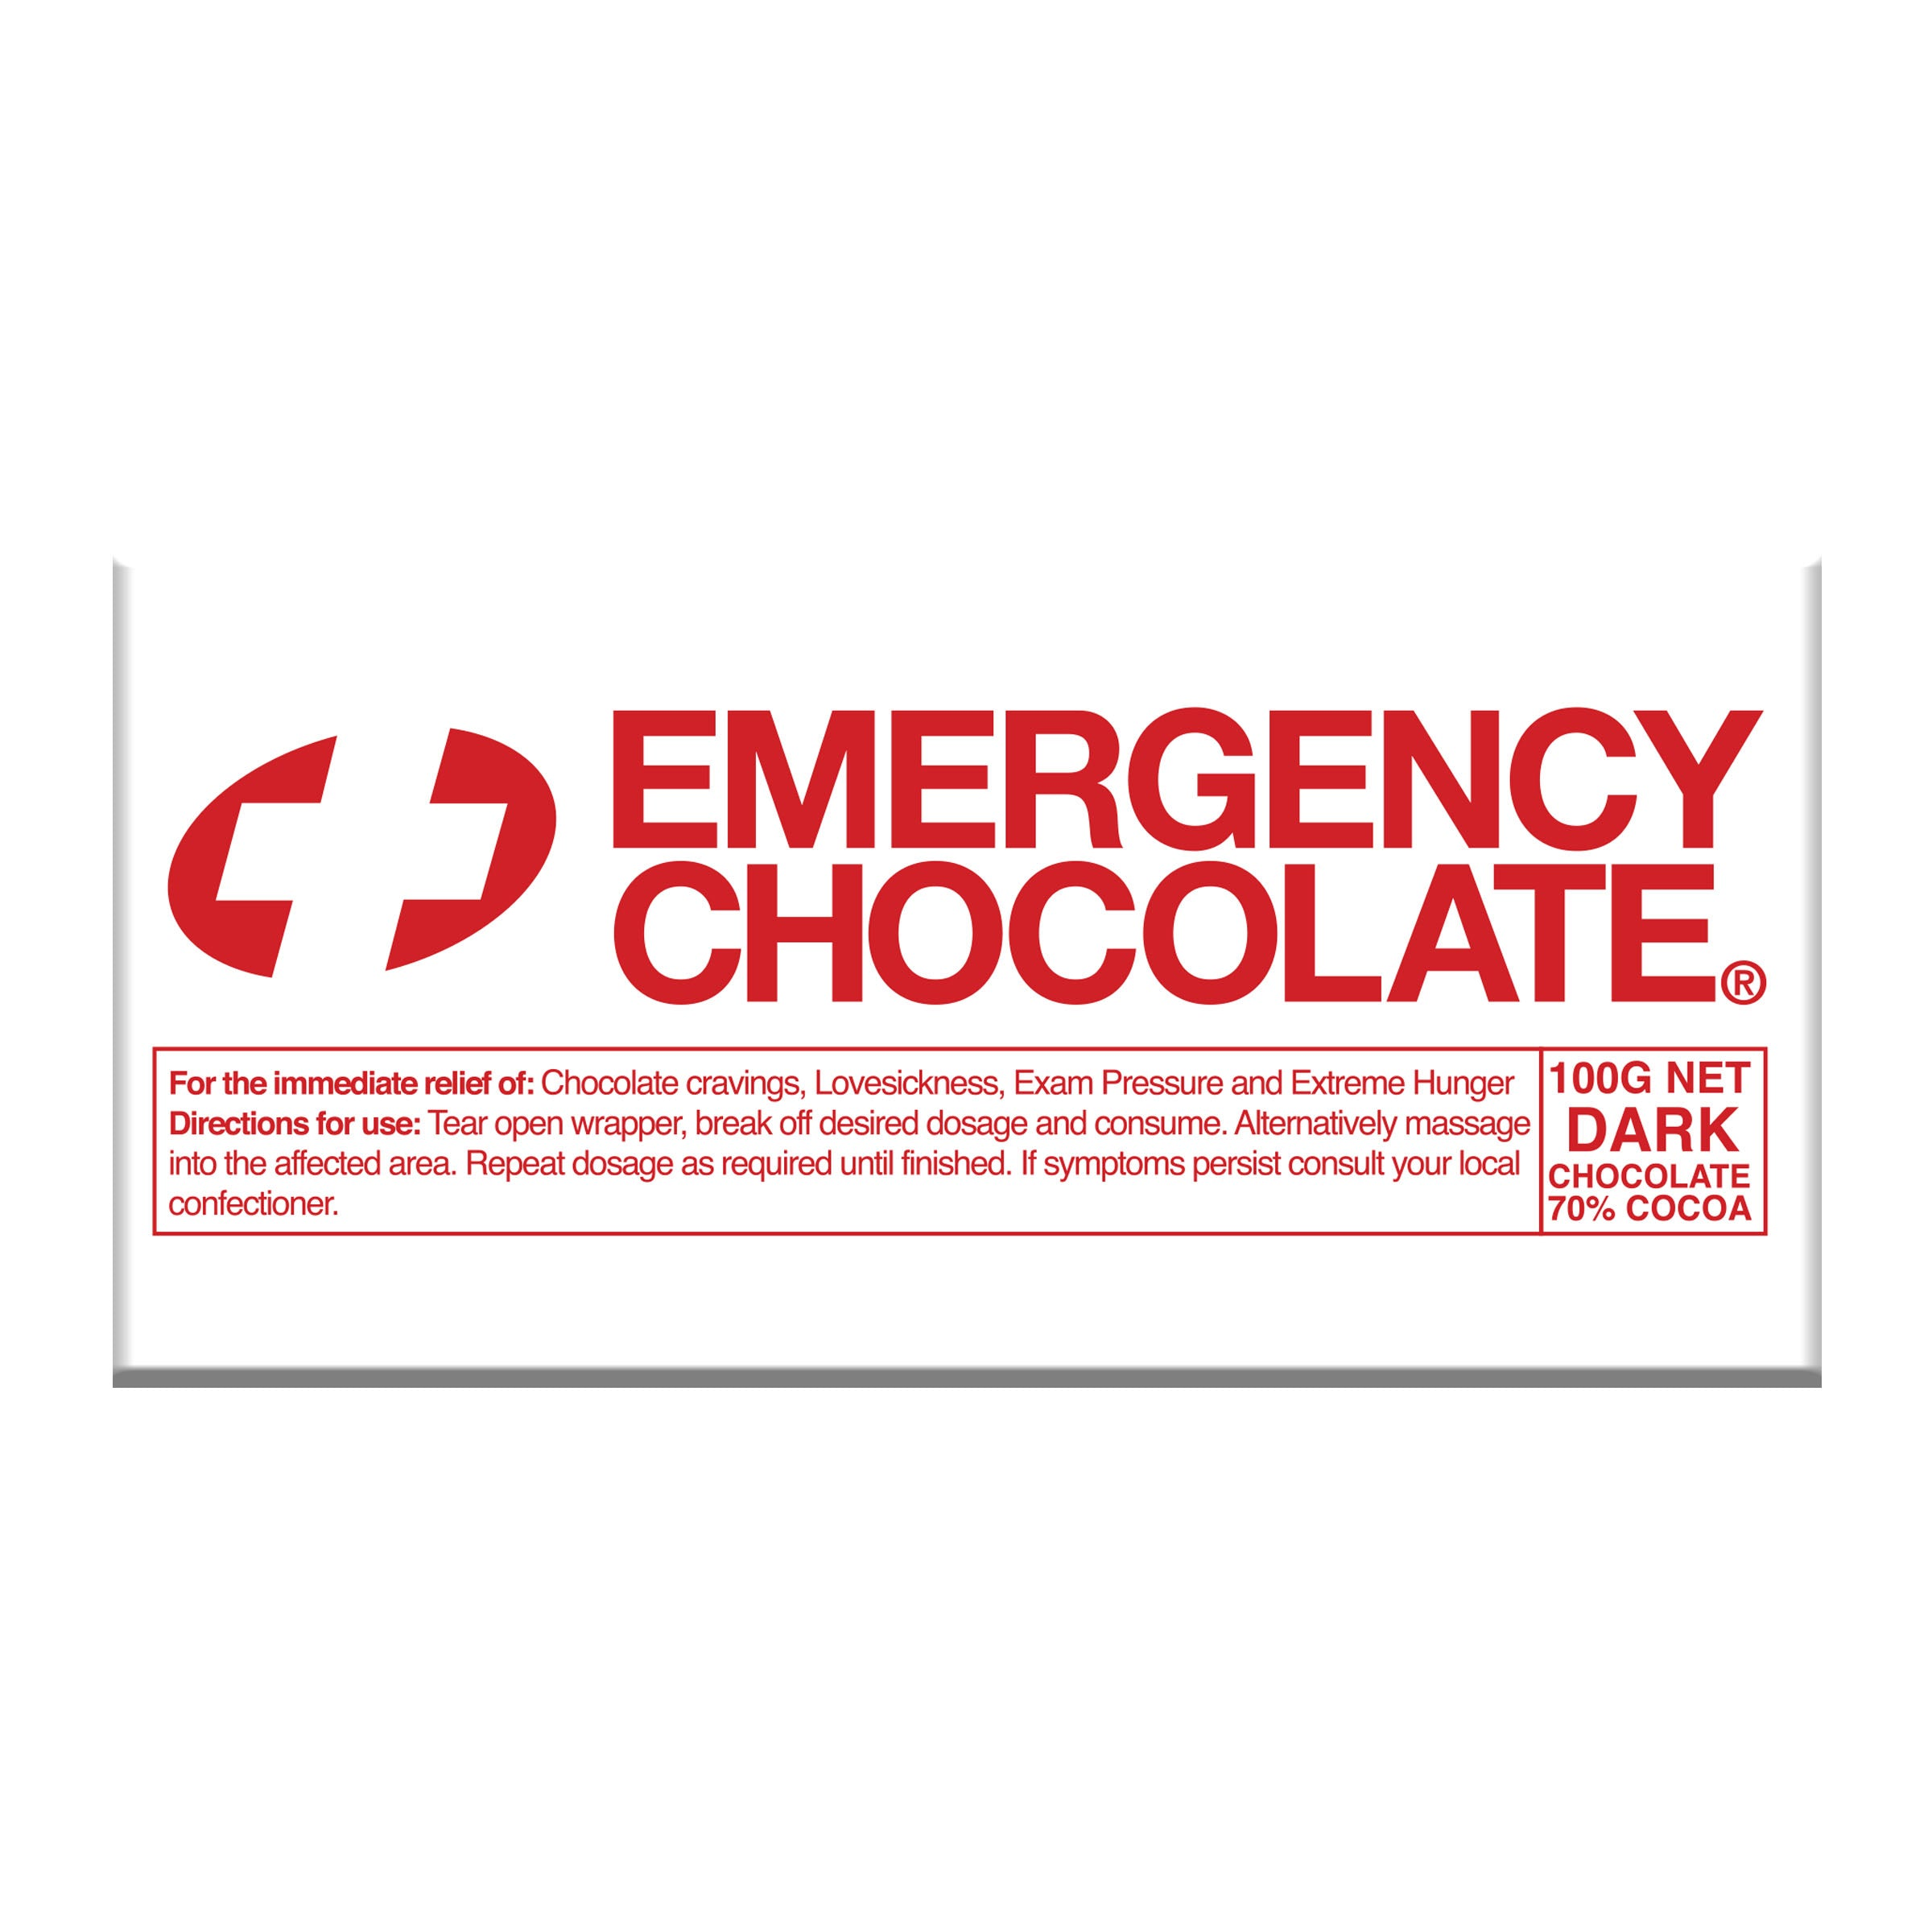 Emergency Dark Chocolate Block